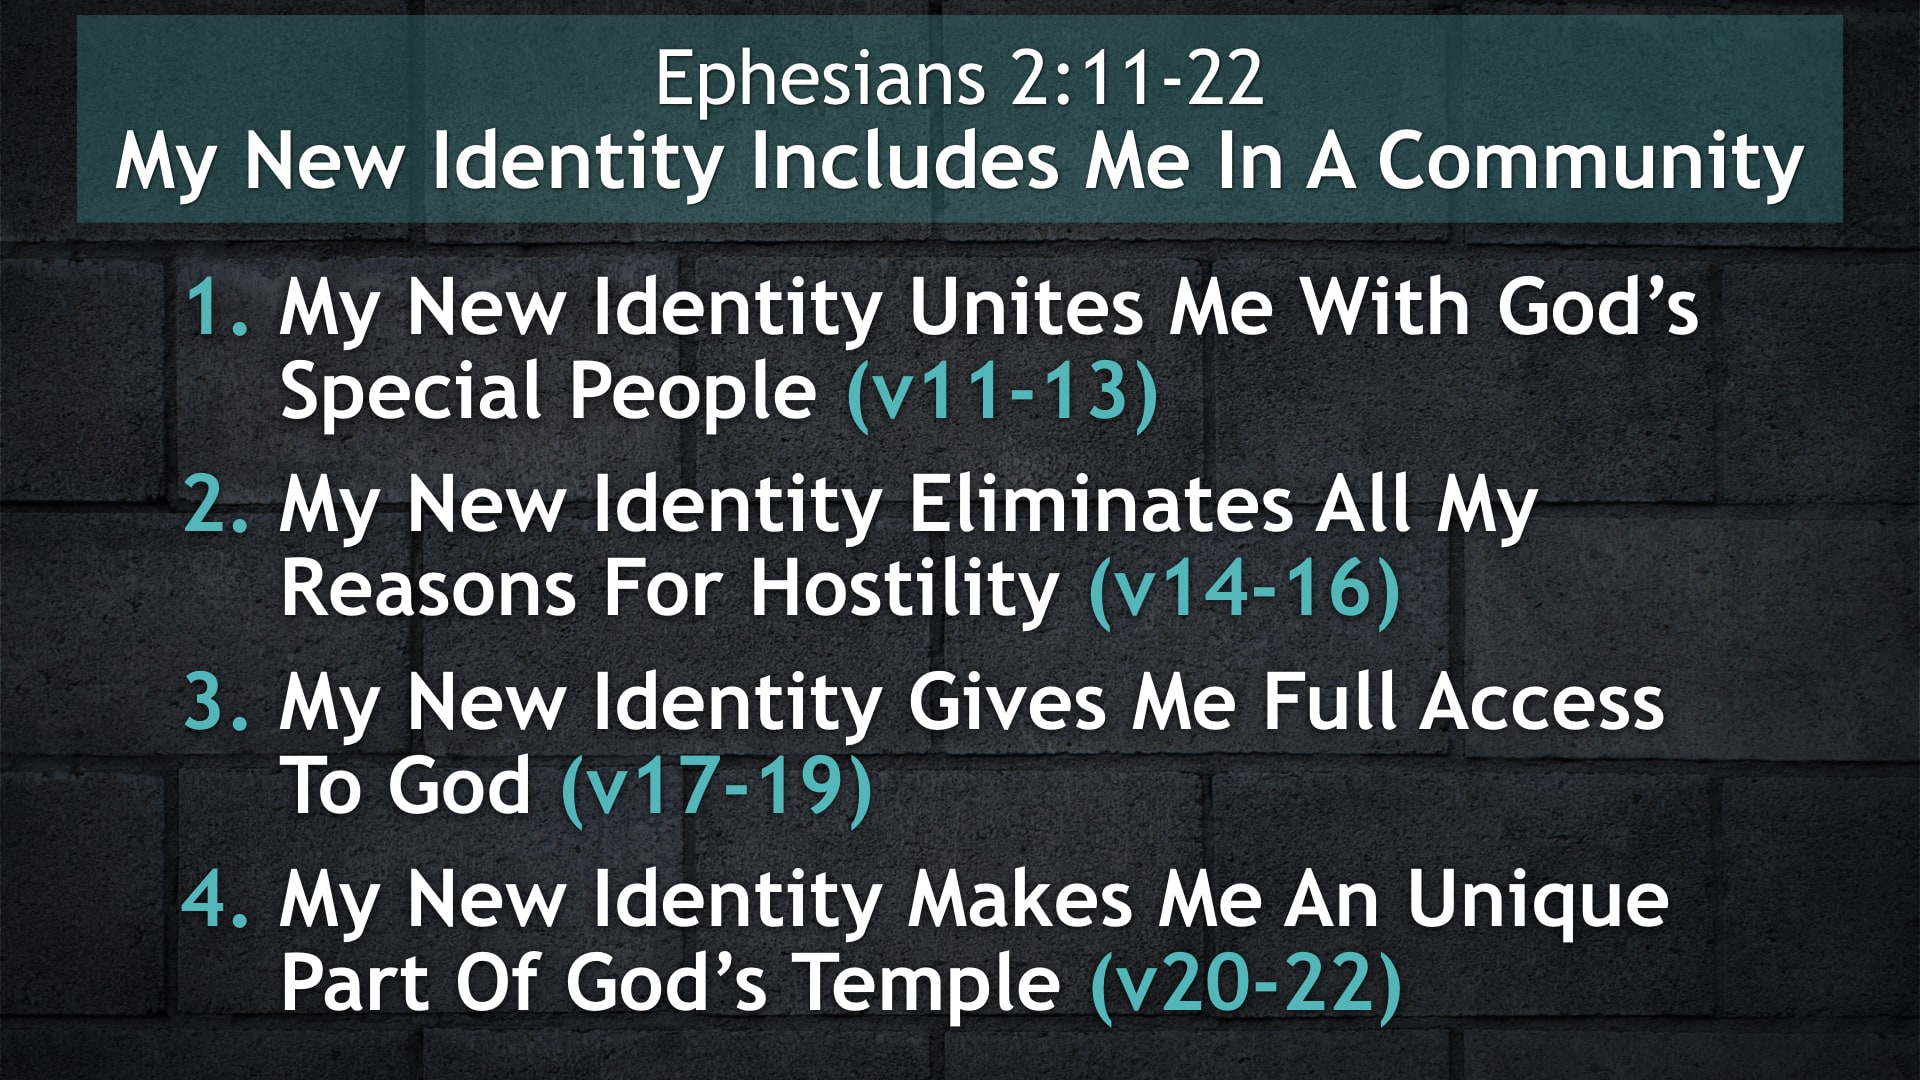 Ephesians 2:11-22, My New Identity Includes Me In A Community